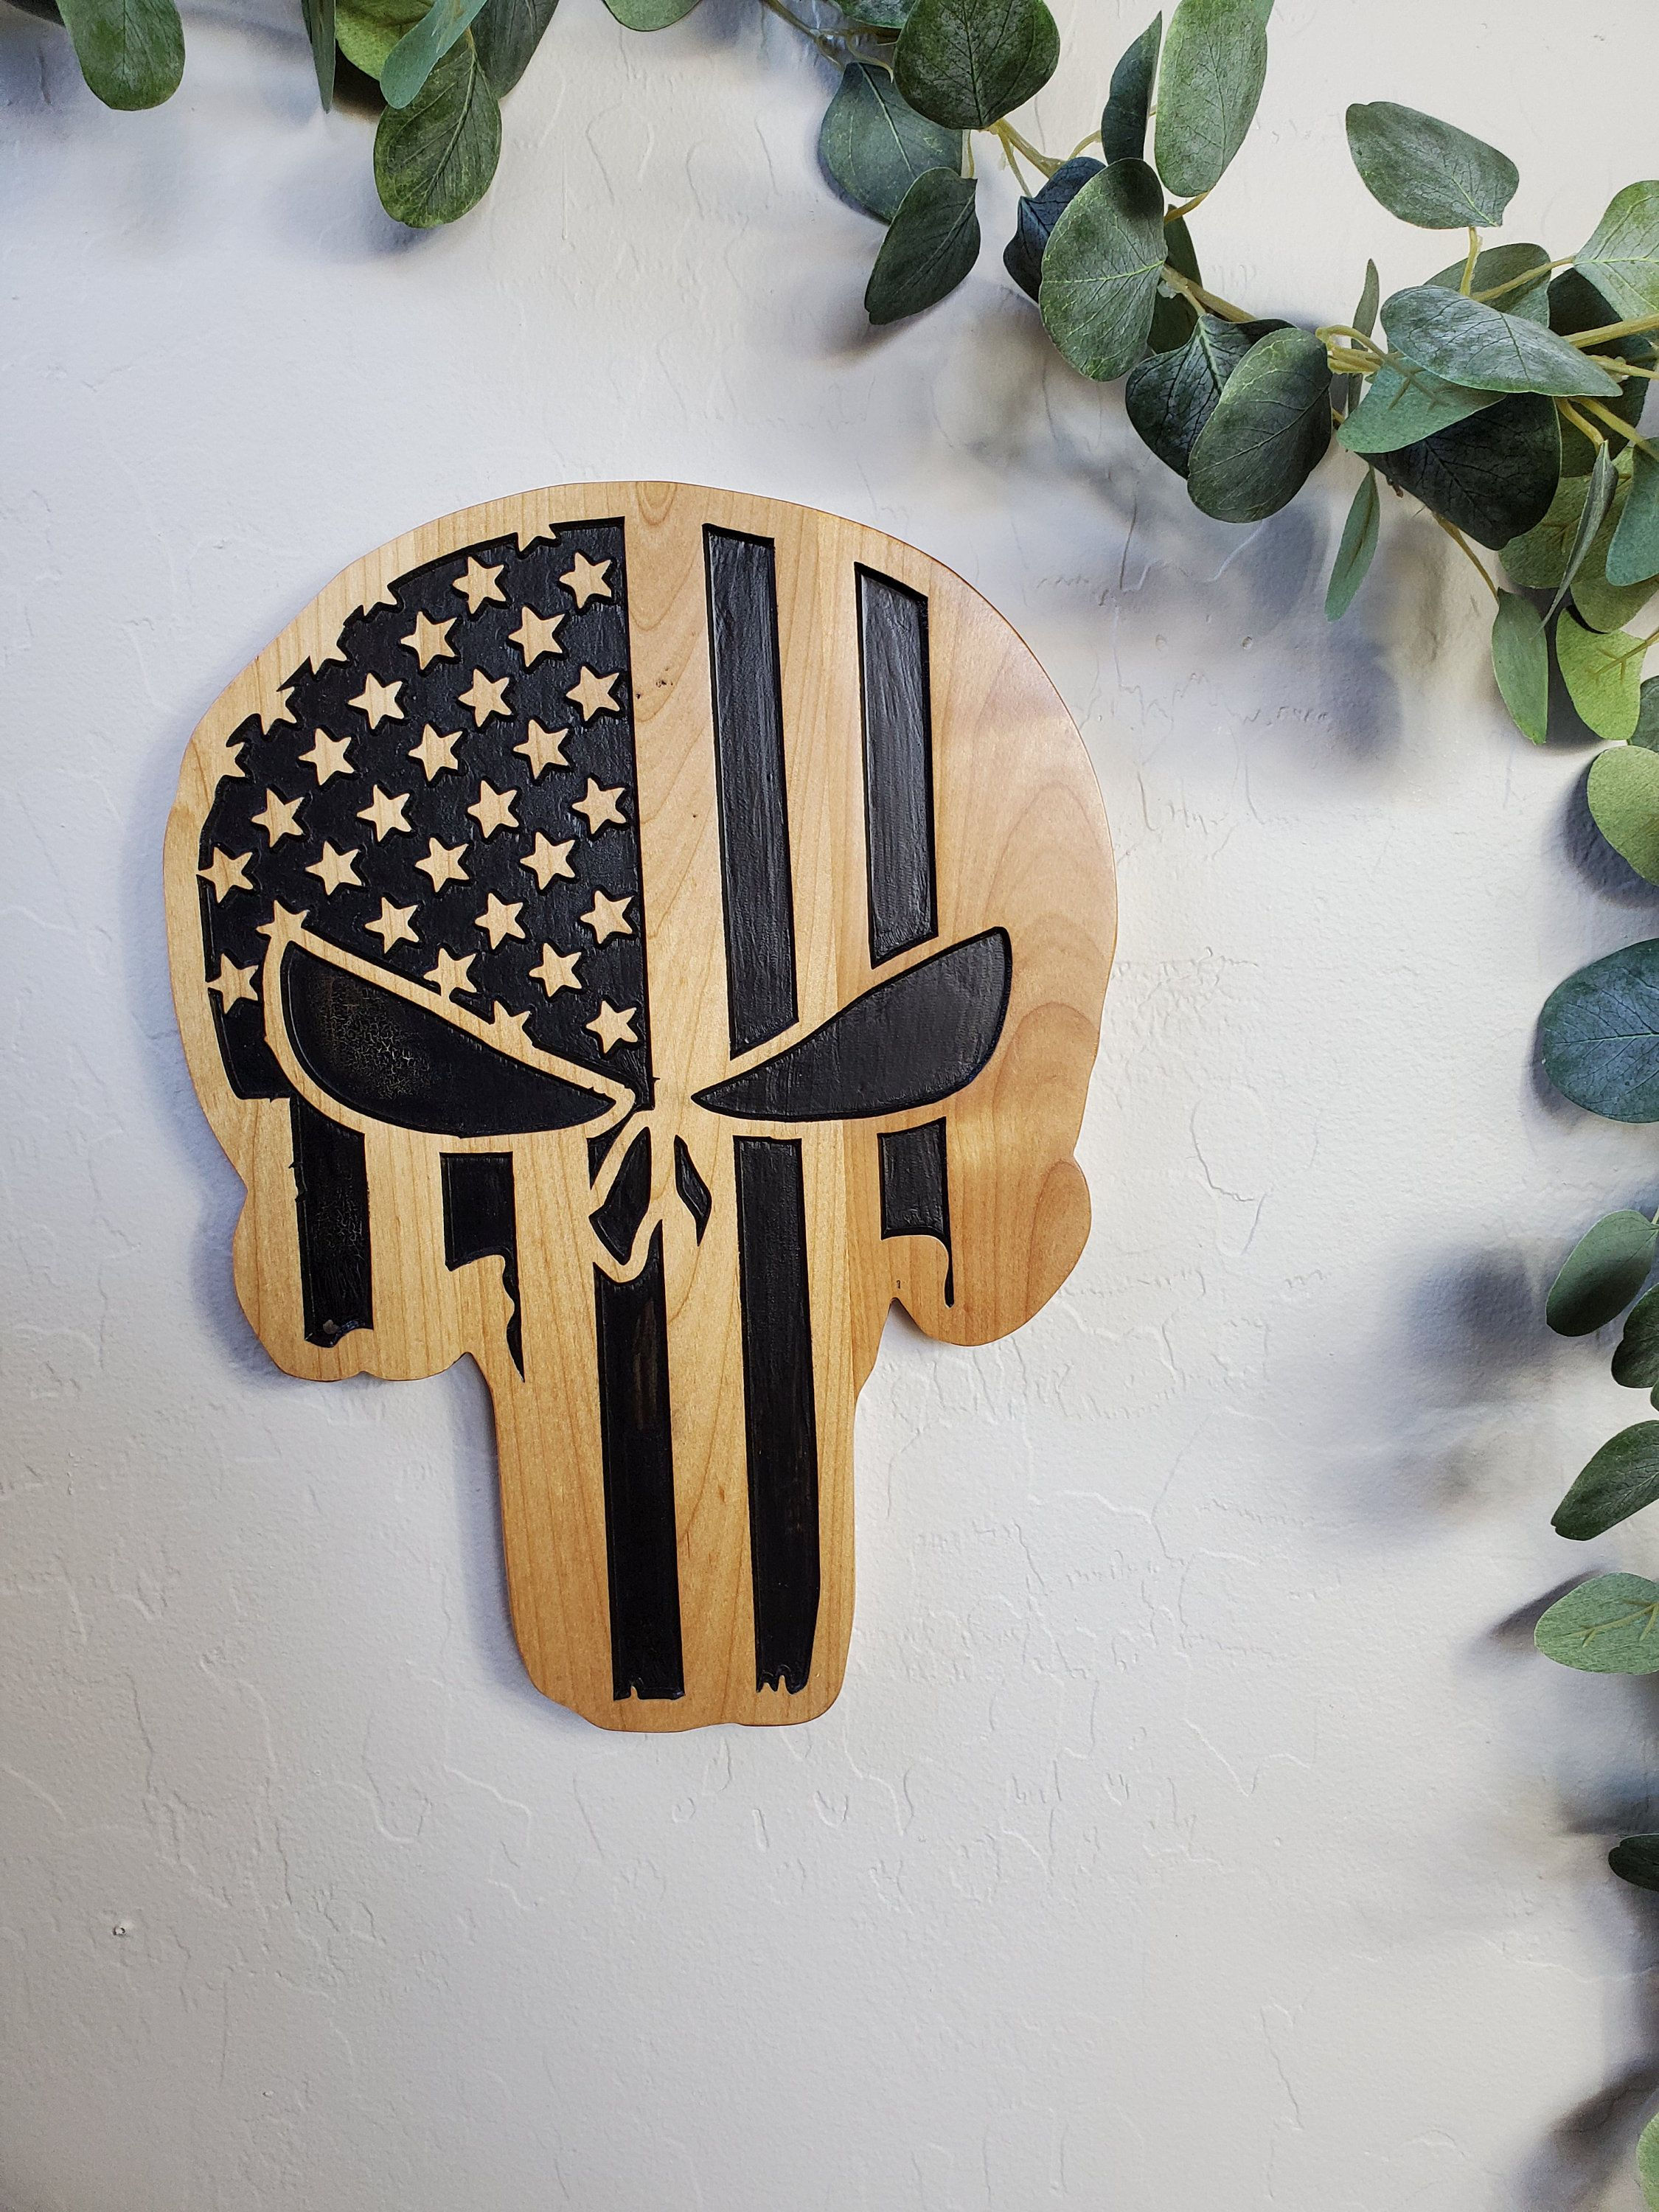 The Punisher Flag Wood Carving Wood Carved Wall Art Etsy In 2021 Carved Wood Signs Carved Wall Art Carved Signs